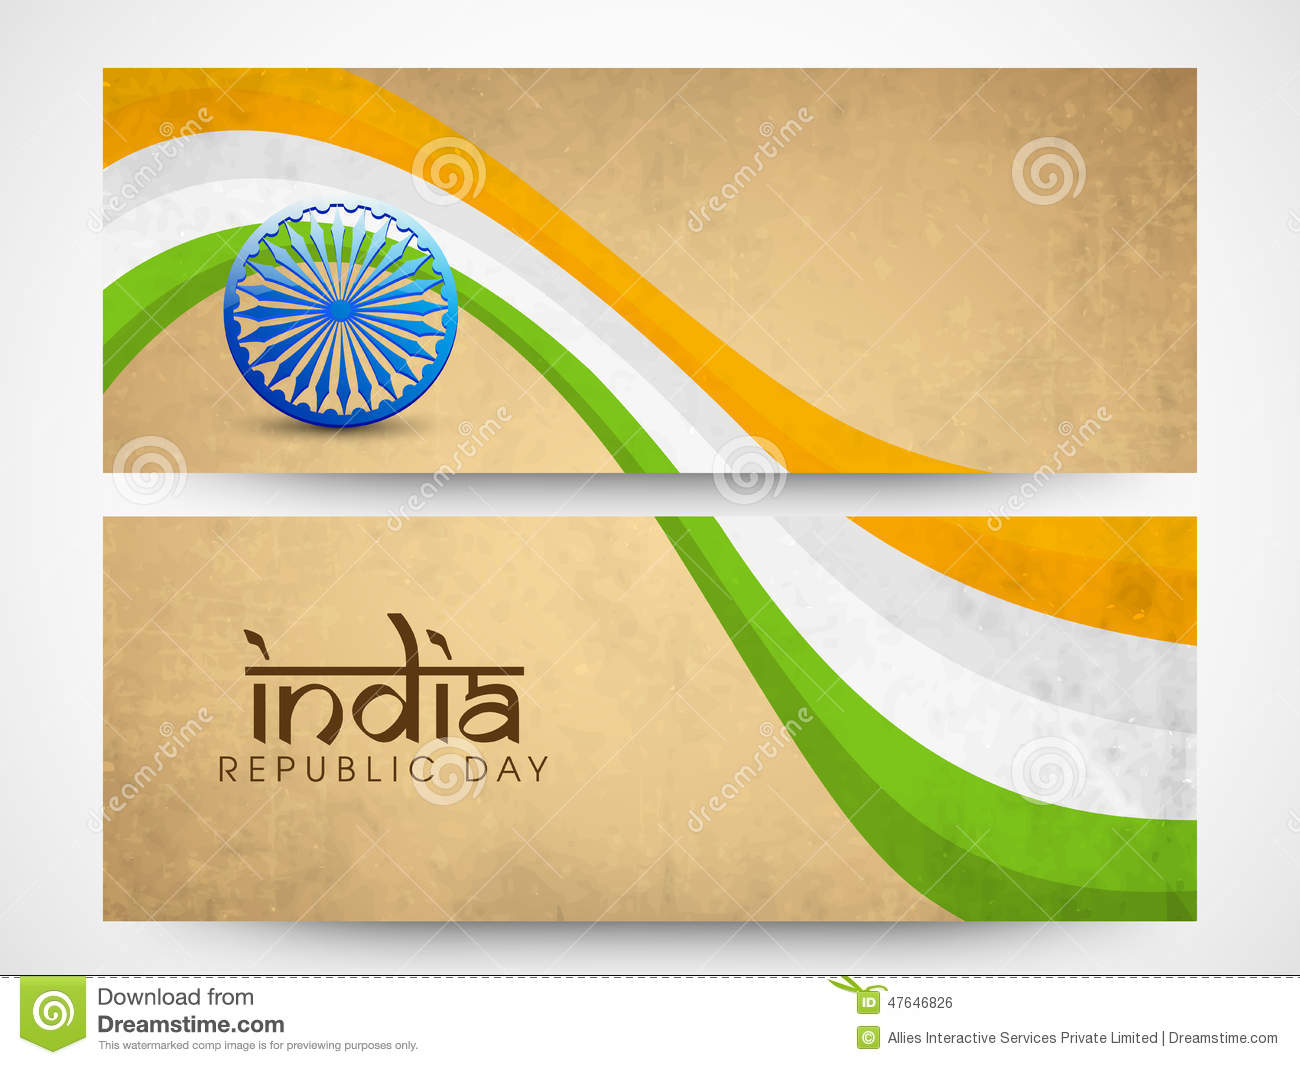 Colors website ashoka - Website Header Or Banner Of Sale With National Flag Colors Royalty Free Stock Image